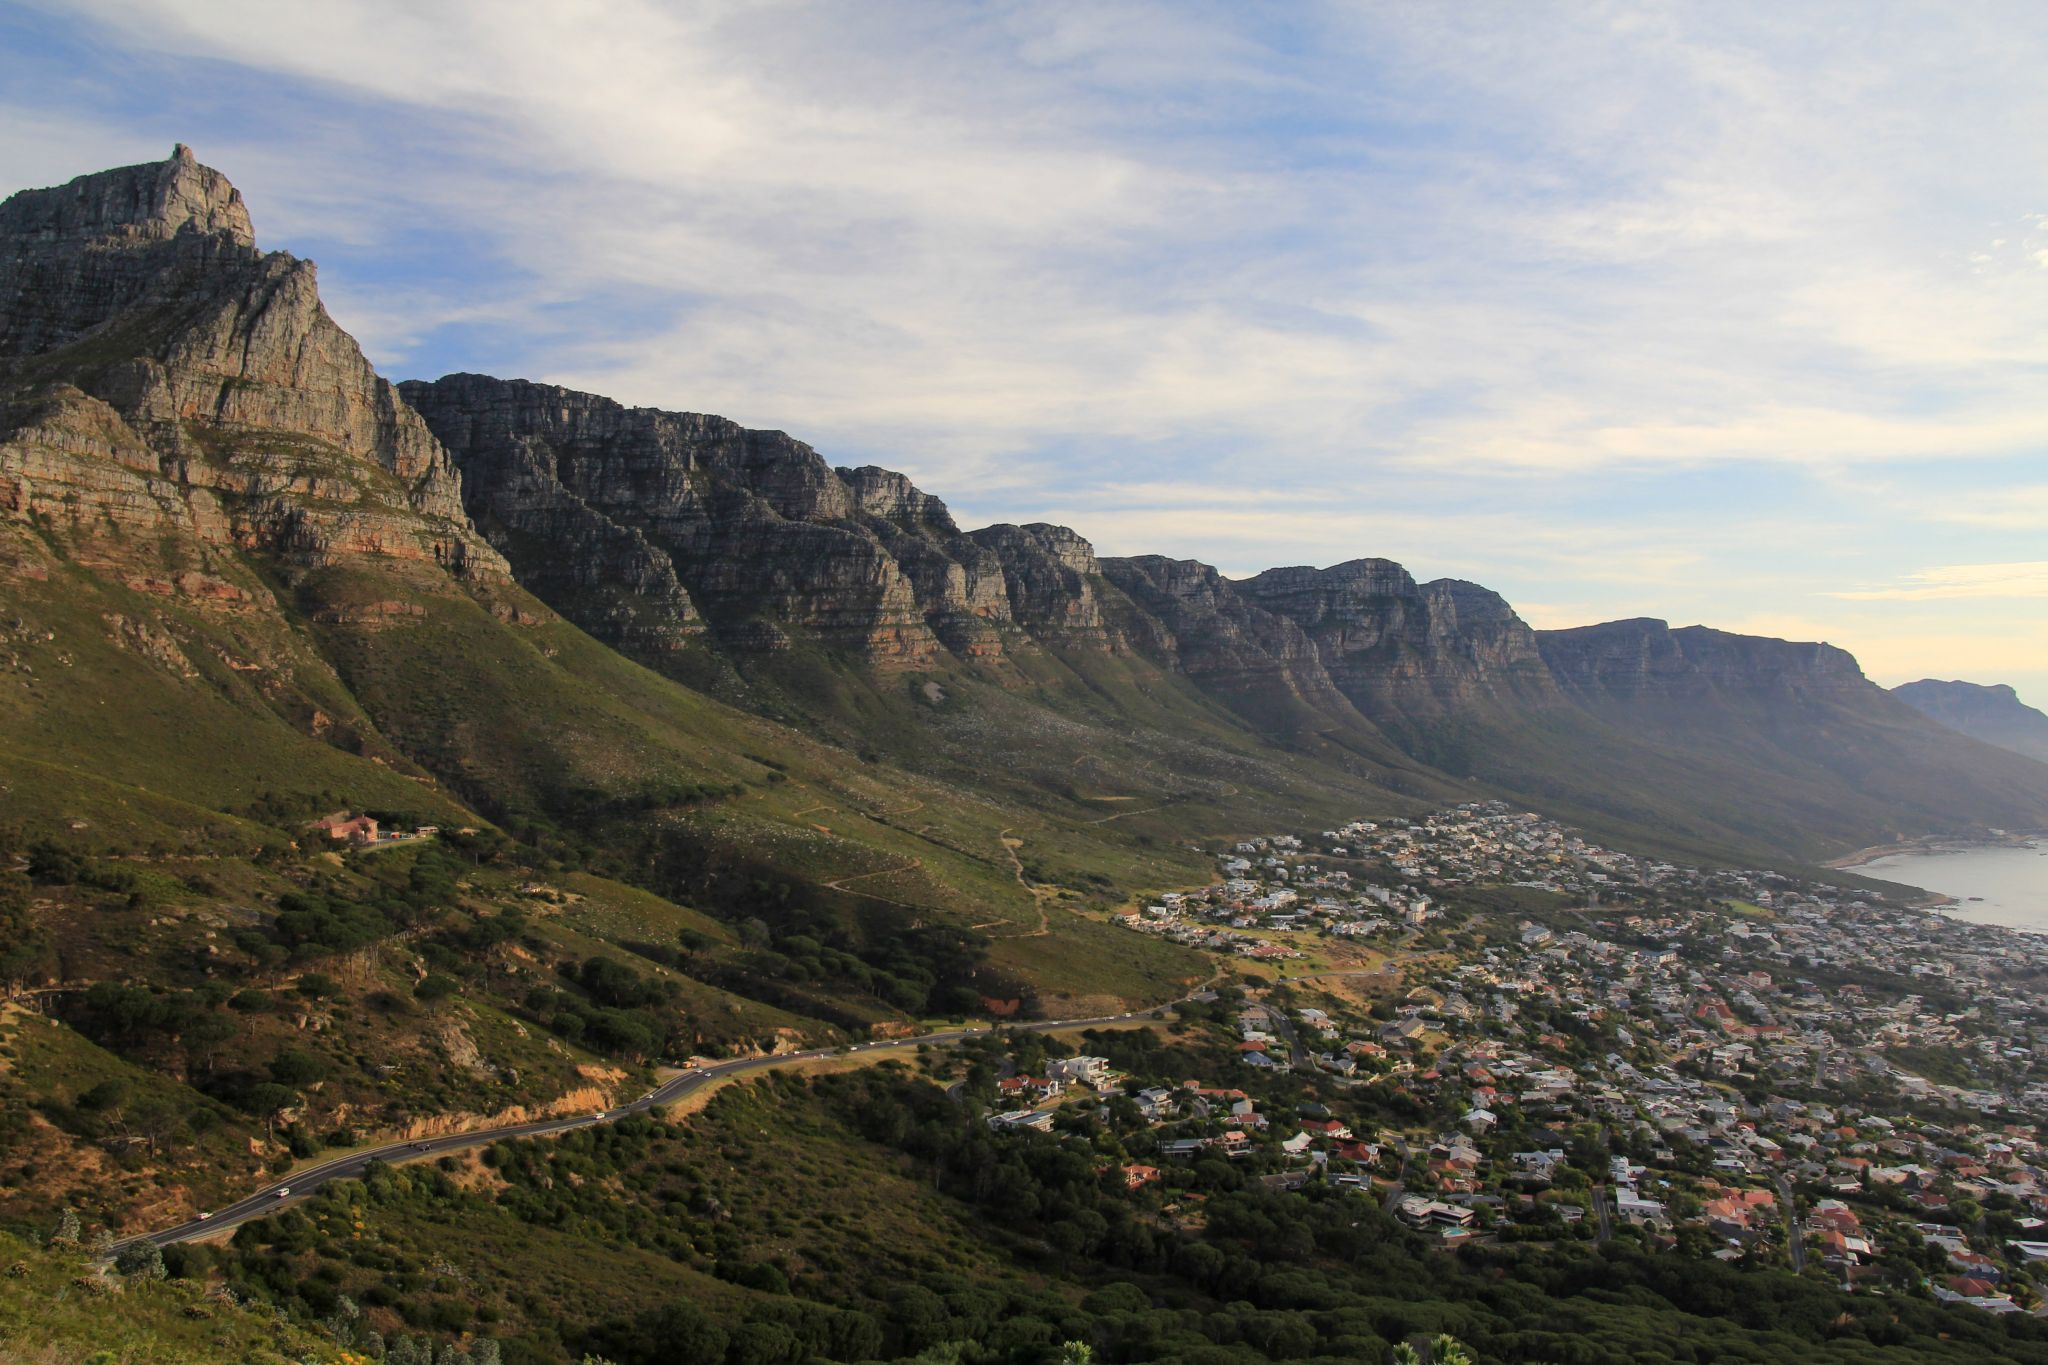 Table Mountain Overview, Cape Town, South Africa